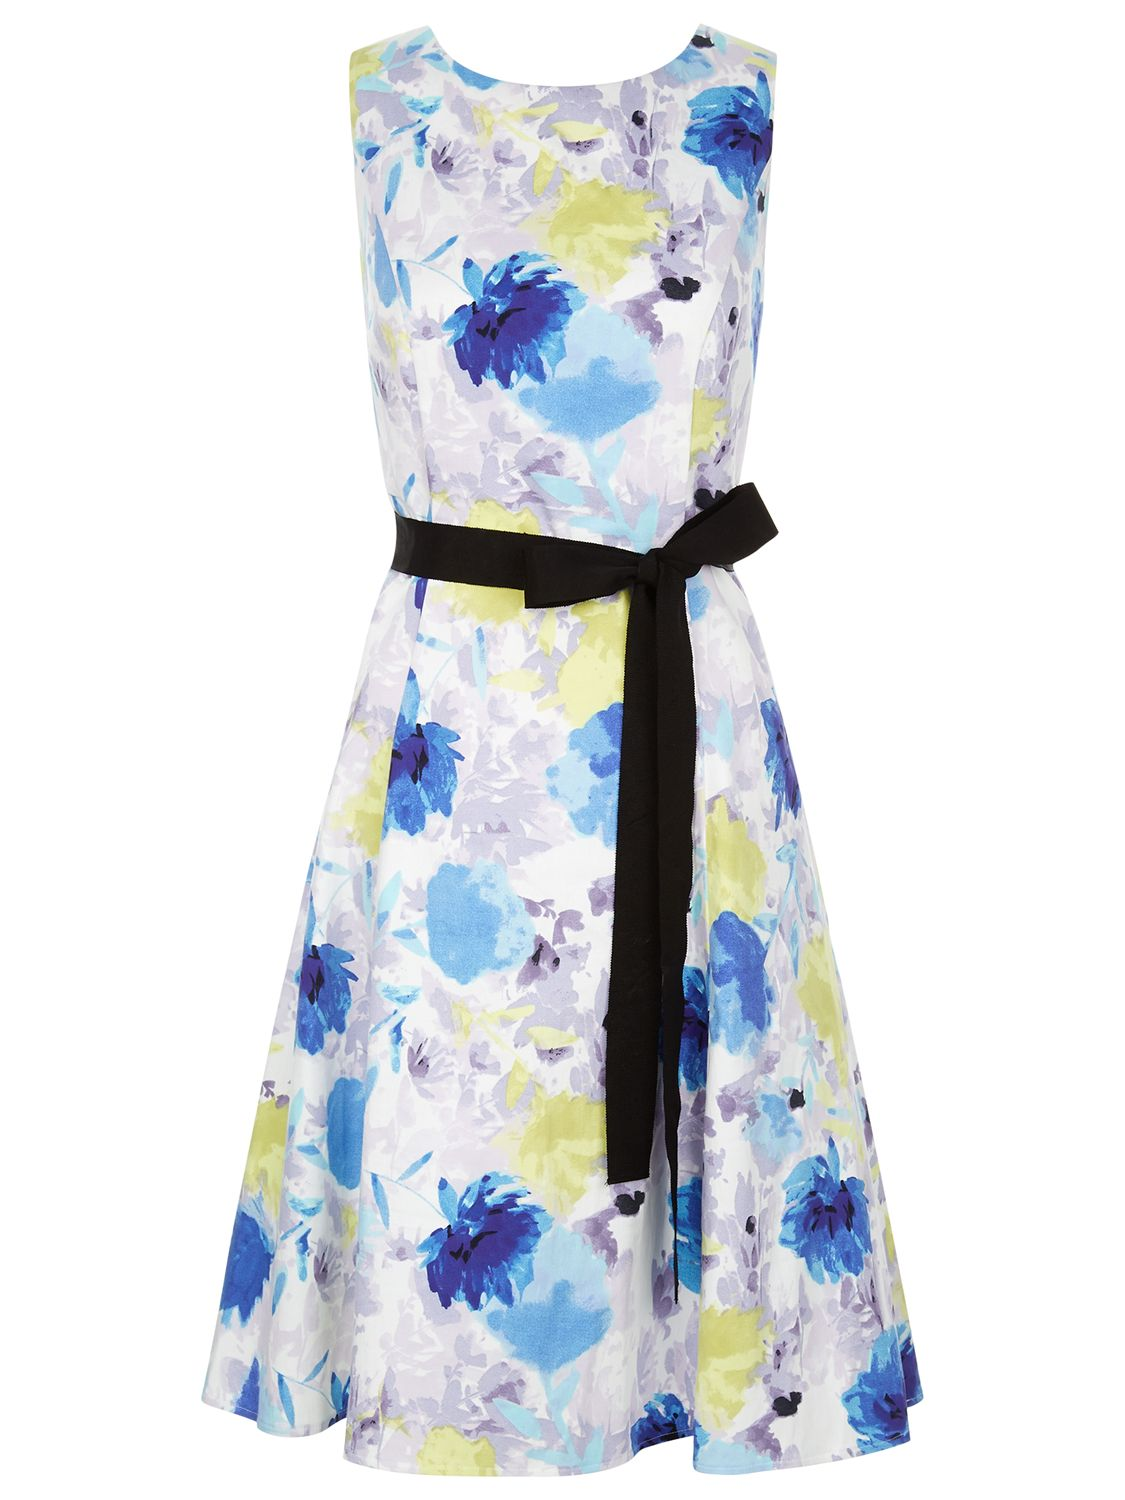 kaliko colour pop floral prom dress multi white, kaliko, colour, pop, floral, prom, dress, multi, white, 14 16 18 12 20 10 8, women, plus size, womens dresses, gifts, wedding, wedding clothing, female guests, special offers, womenswear offers, womens dresses offers, latest reductions, 1869543